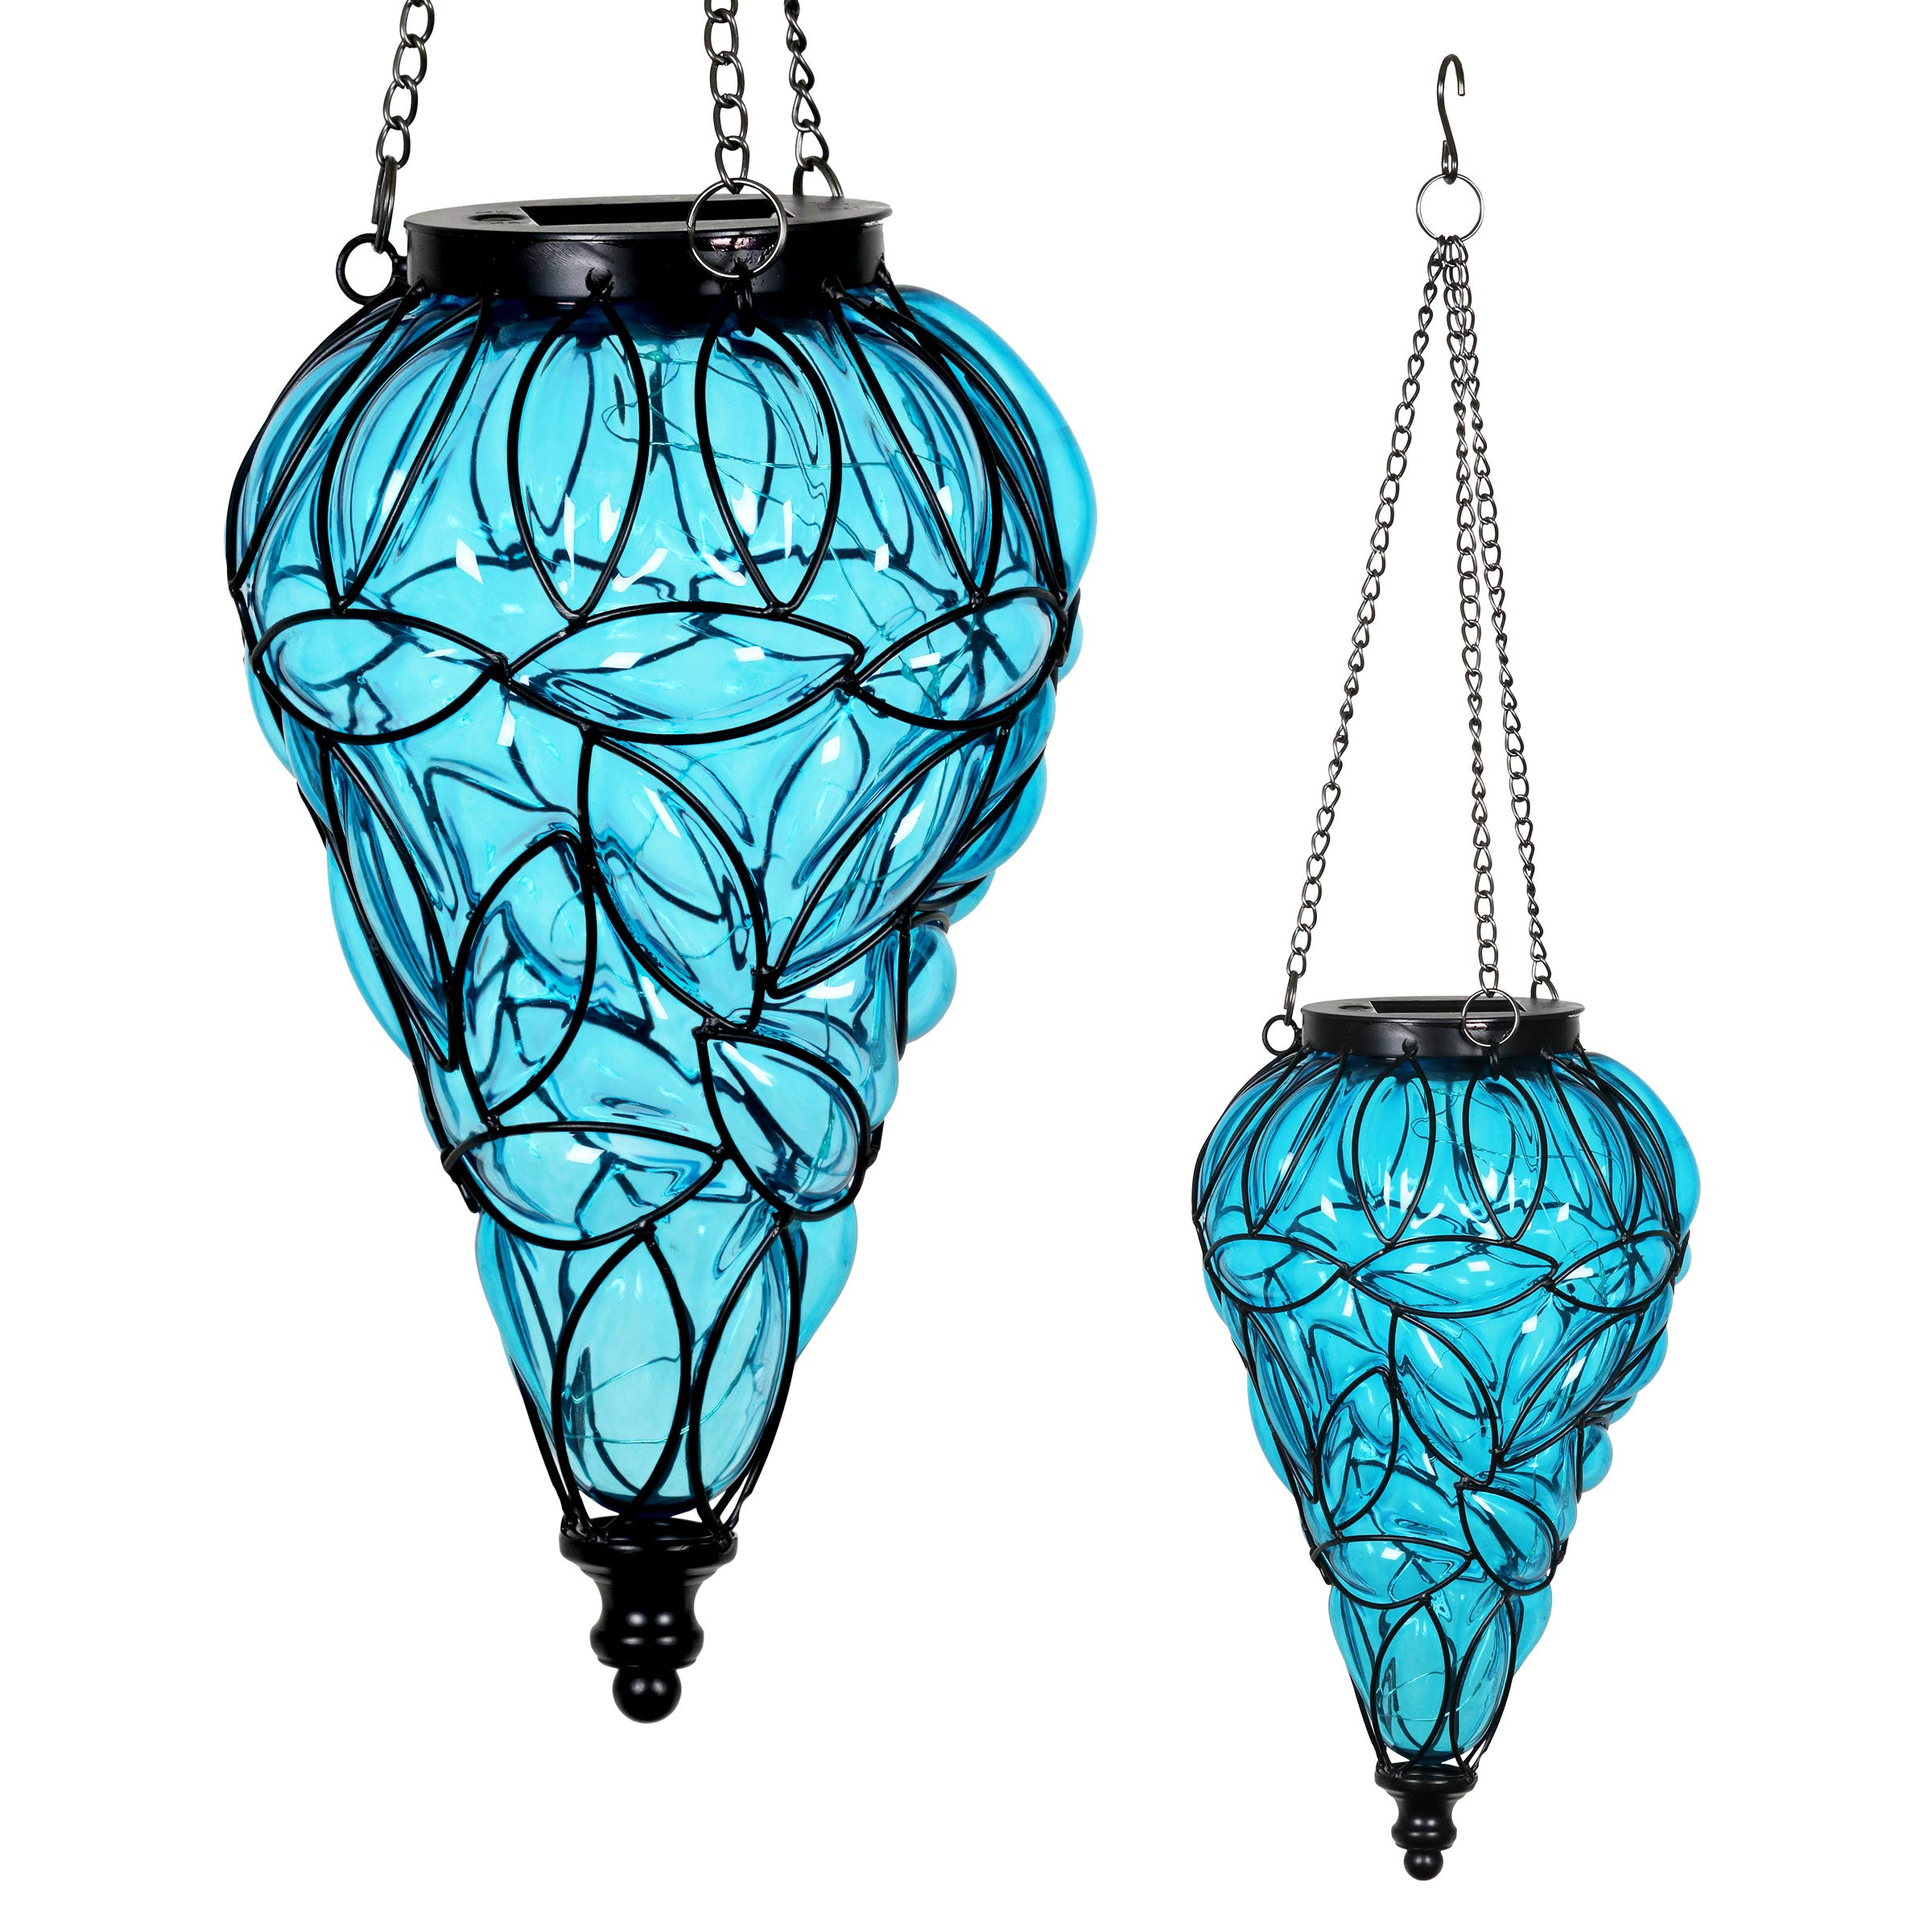 Exhart Blue Solar Lantern - Glass Tear-Shaped Hanging Lantern - Teardrop Glass Ceiling Lantern Hangs in a Metal Cage w/ 12 Blue LED Firefly Solar Lights 7'' L x 7'' W x 24'' H by Exhart